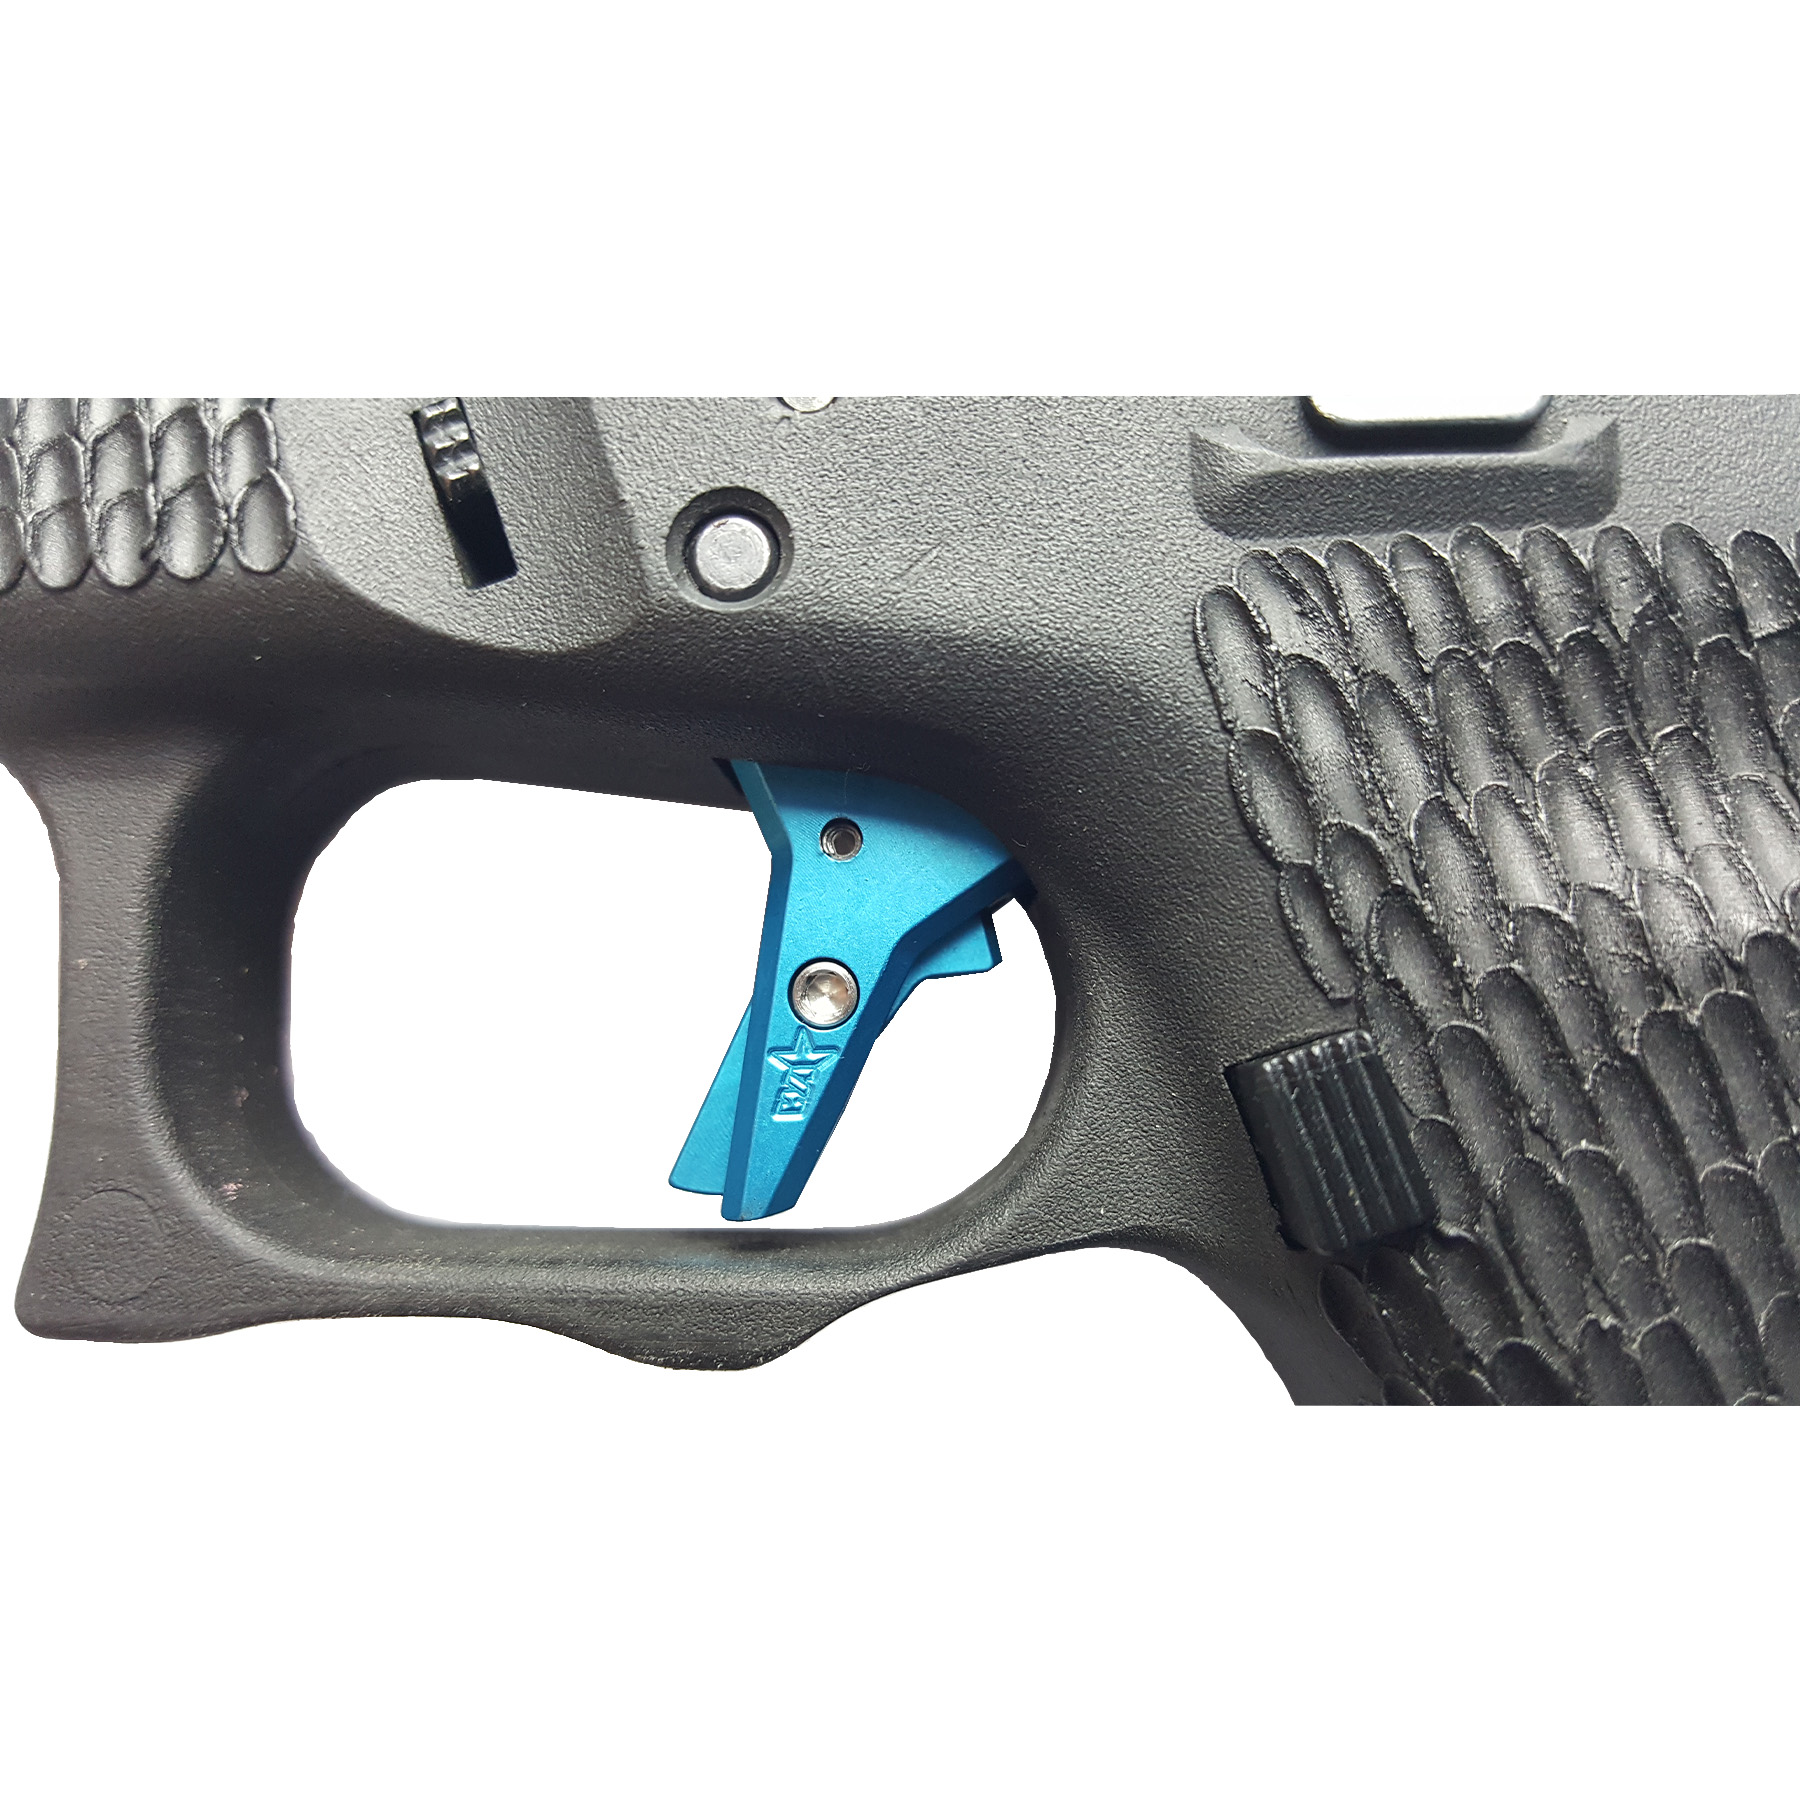 Wheaton Arms Elite Pro-Carry Trigger Assembly, Blue Finish, Fits Glock 20,  21, 40, 41 Gen 1-4